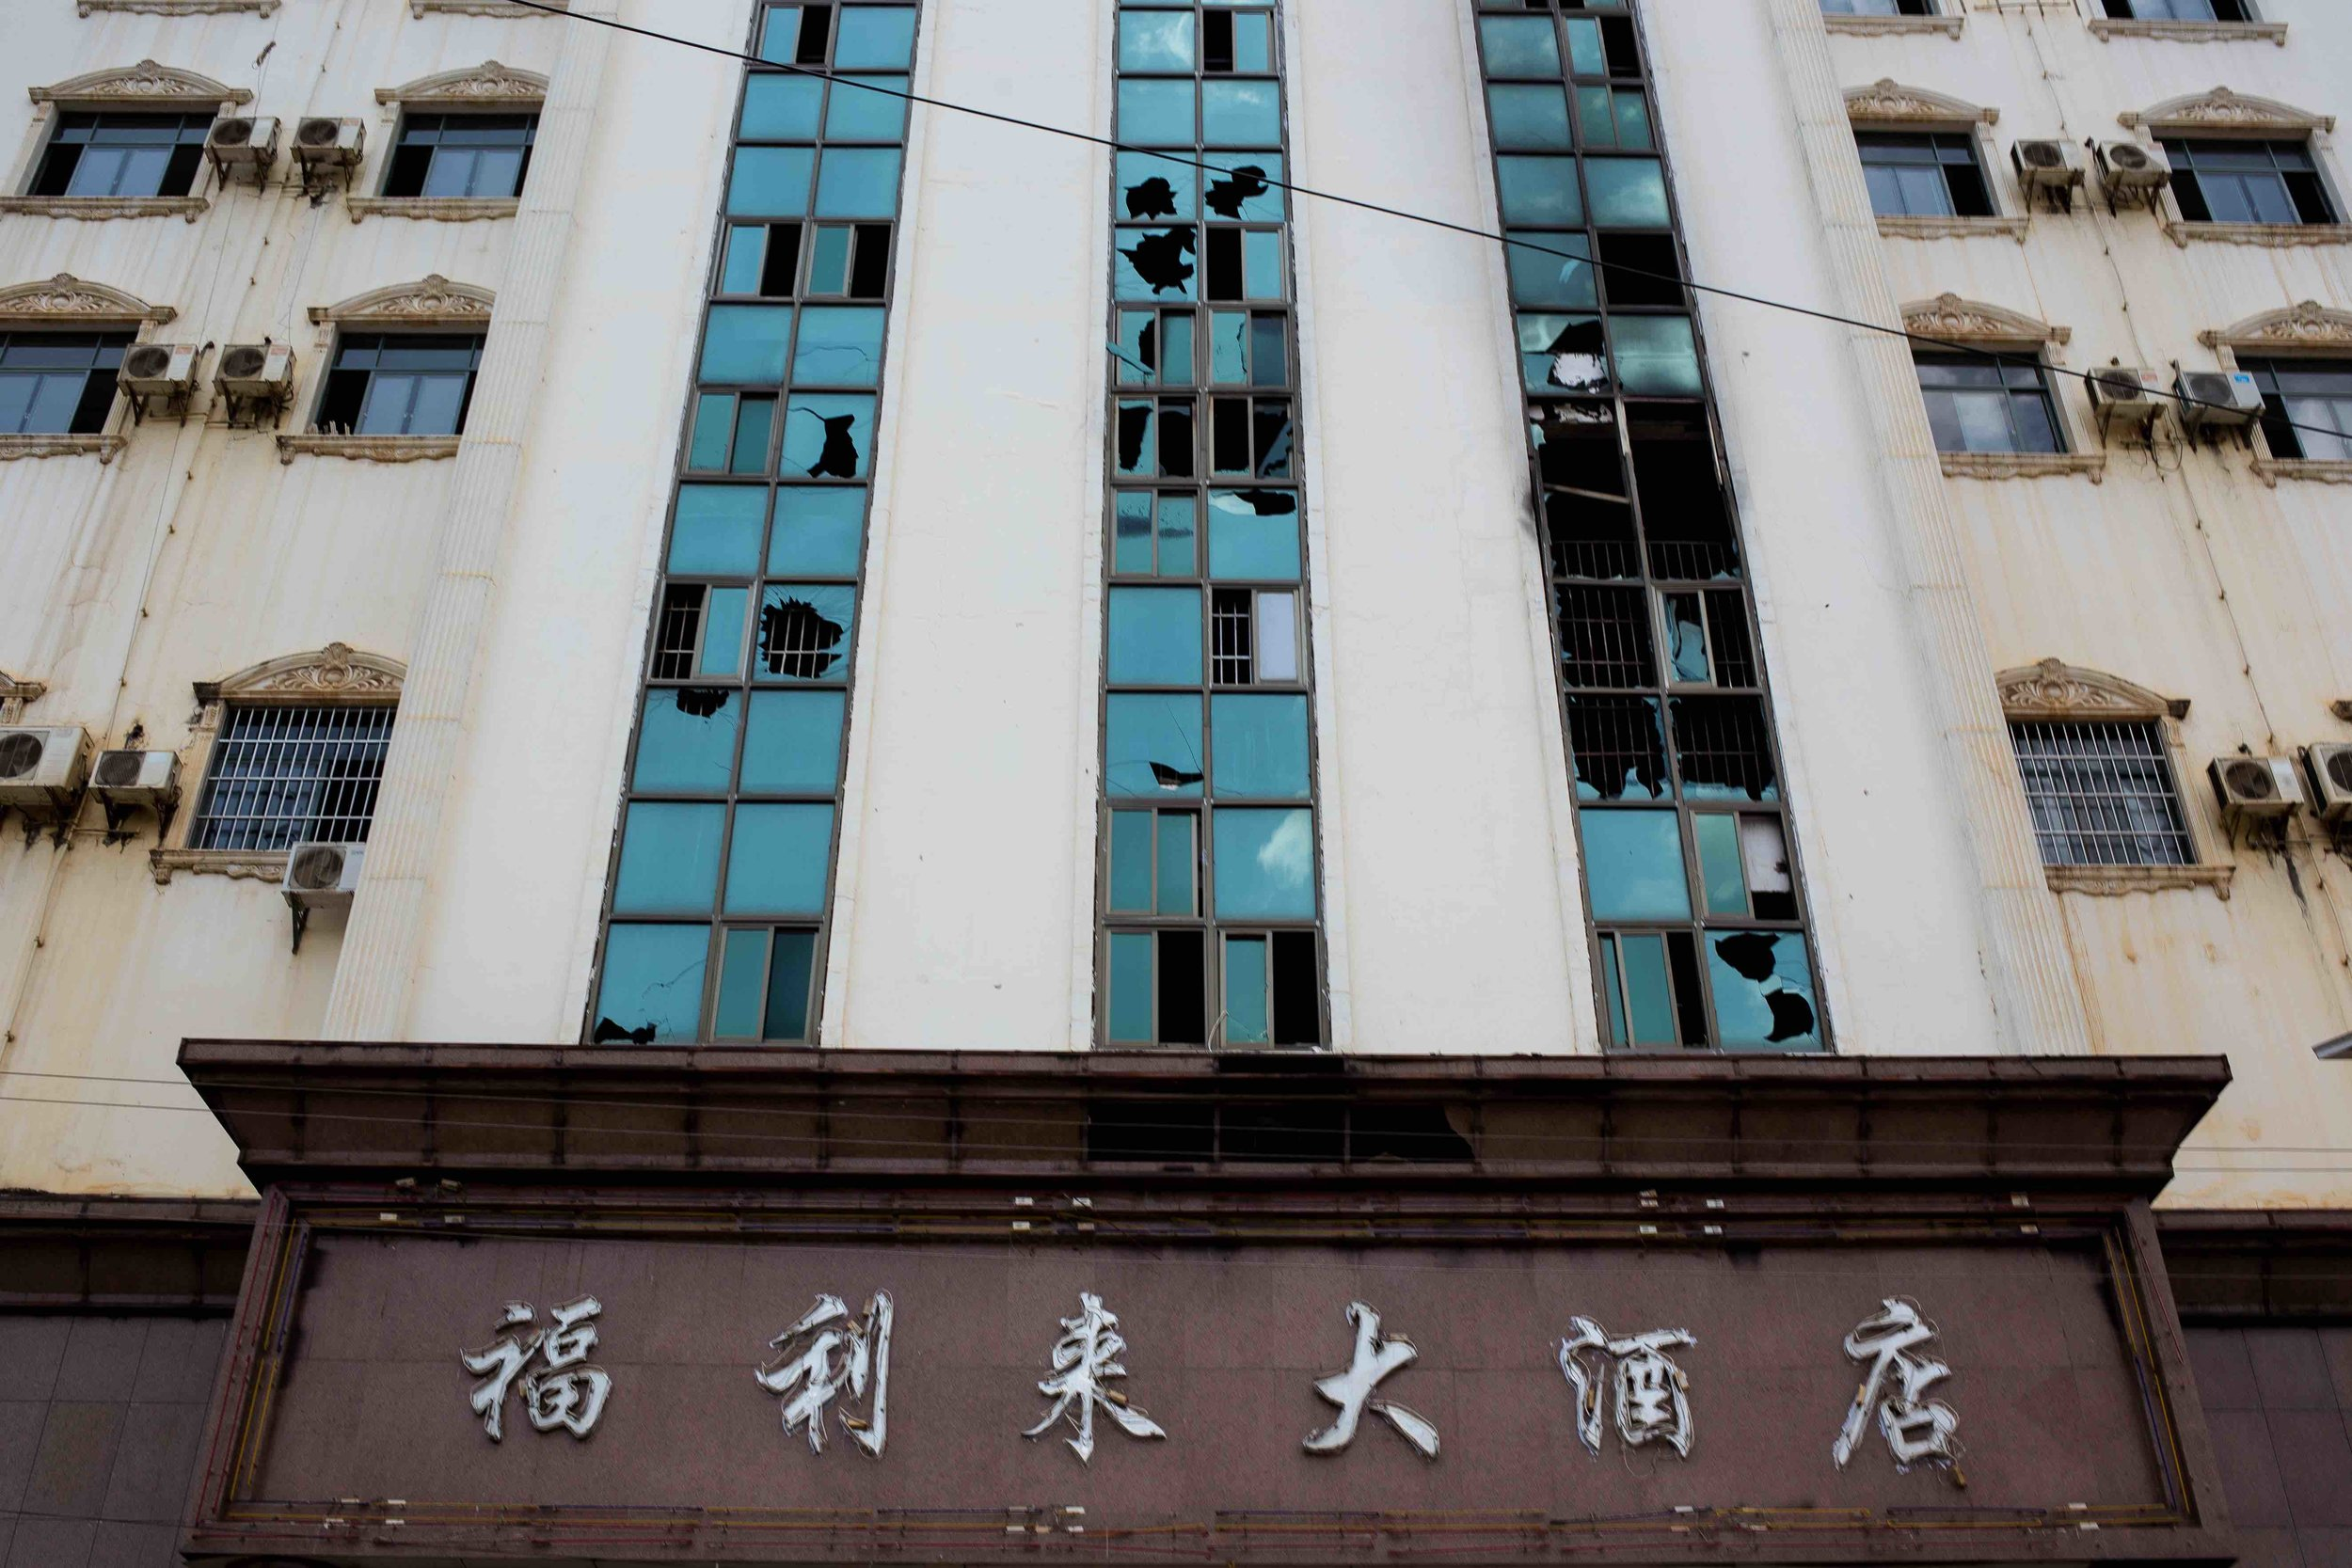 One of the four casinos under attacked by MNDAA in March 2017. MNDAA robbed 4billion RMB from this casino according to the manager of the casino. Photo by Ann Wang